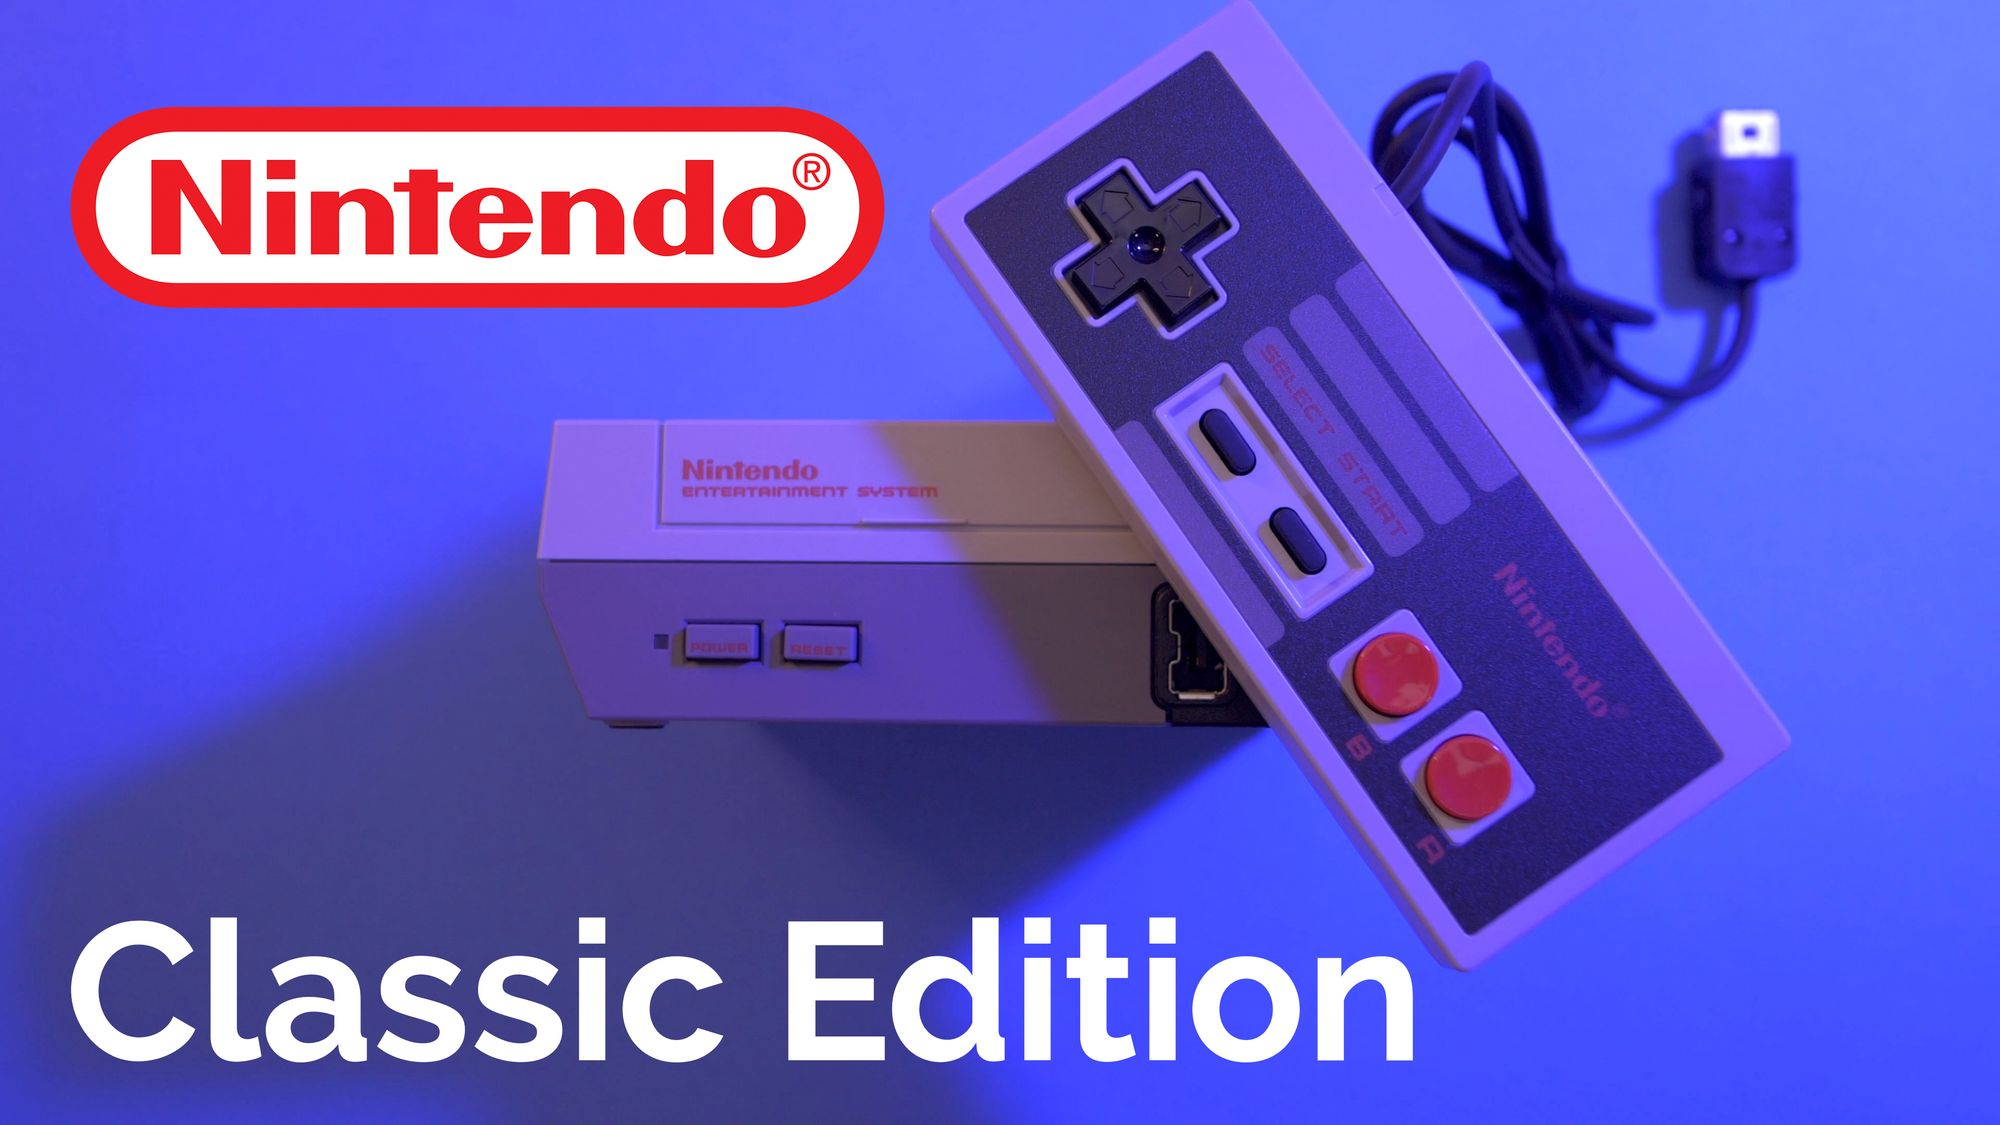 Nintendo Classic Edition (NES Mini): First Look!